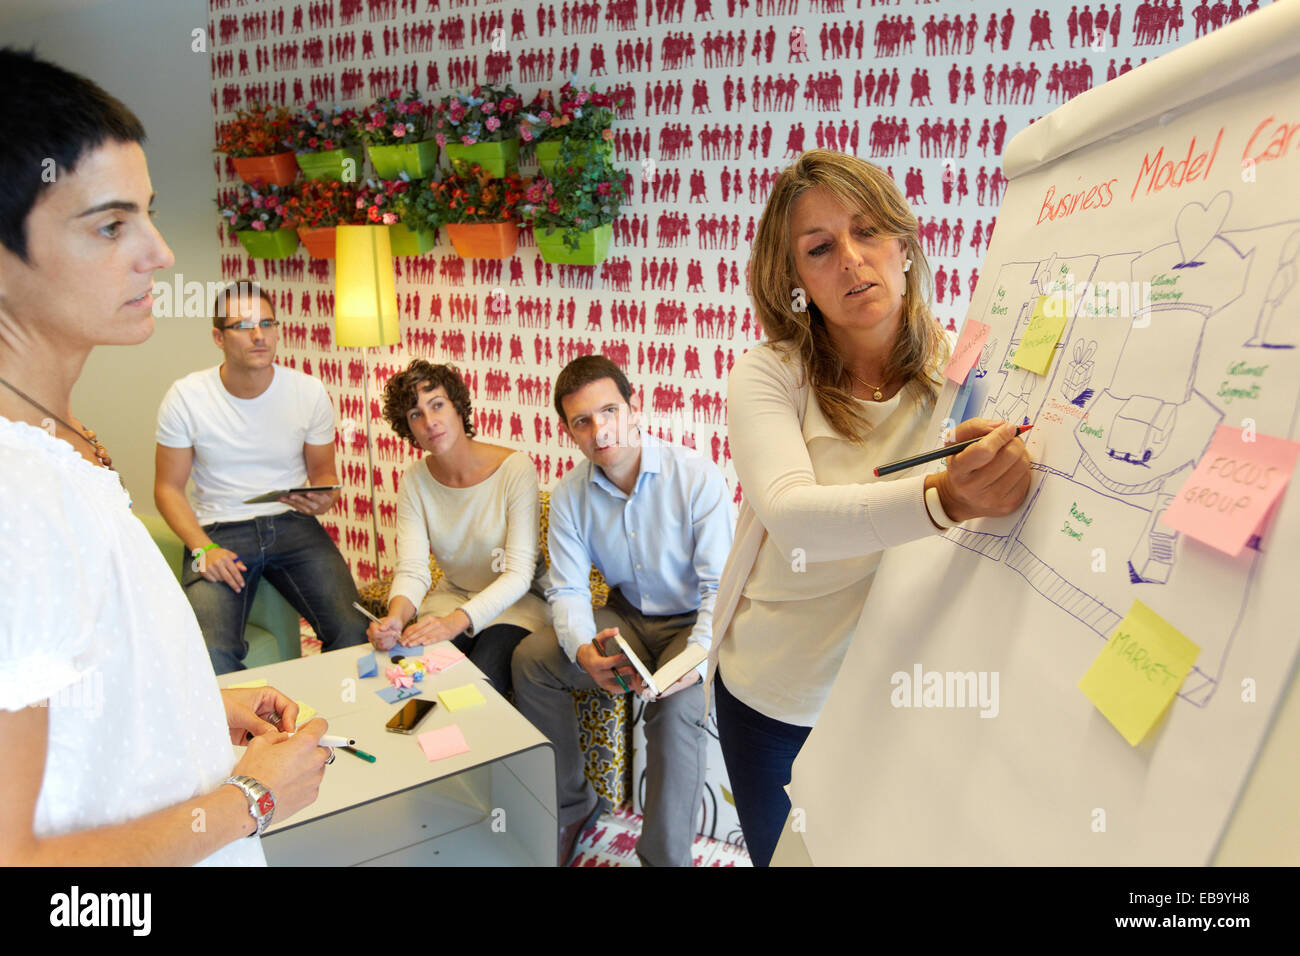 innovation in business groups The business intelligence group was founded with a mission to reward organizations, products and individuals for superior performances with business  innovation is.